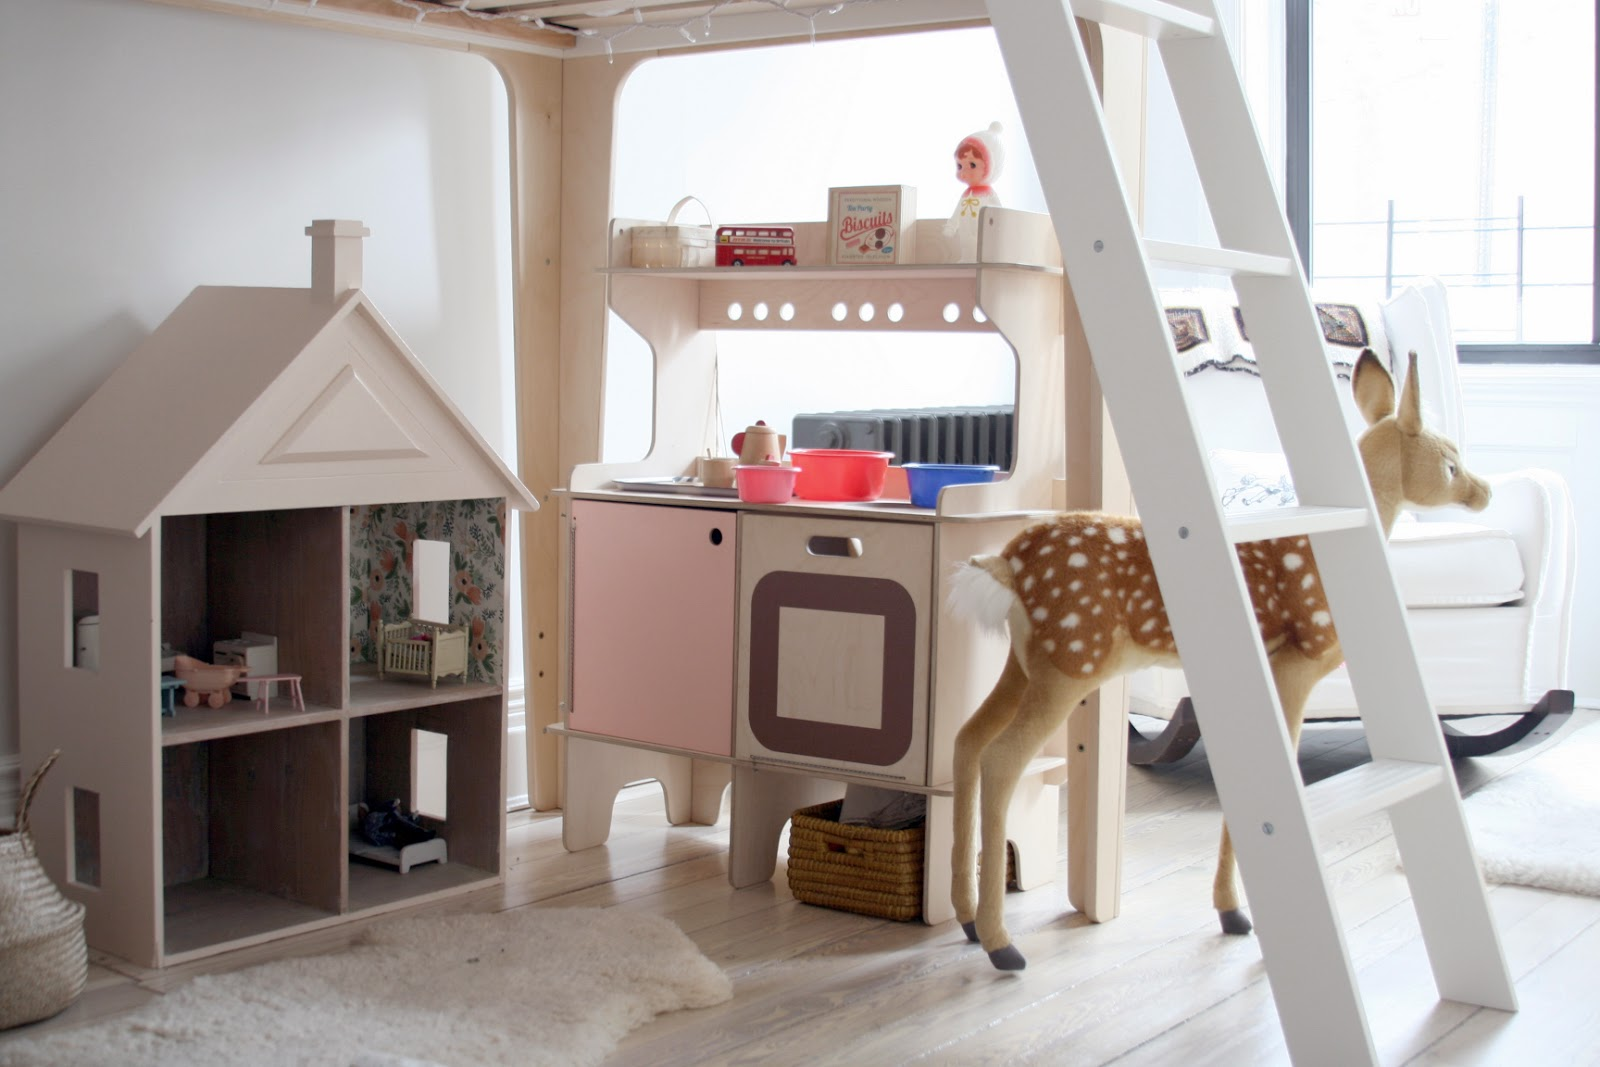 Fresh shopping guide perch loft bed and classic crib by oeuf teepee by great plains rug and rocker abc carpet and home play kitchen by momoll storage boxes